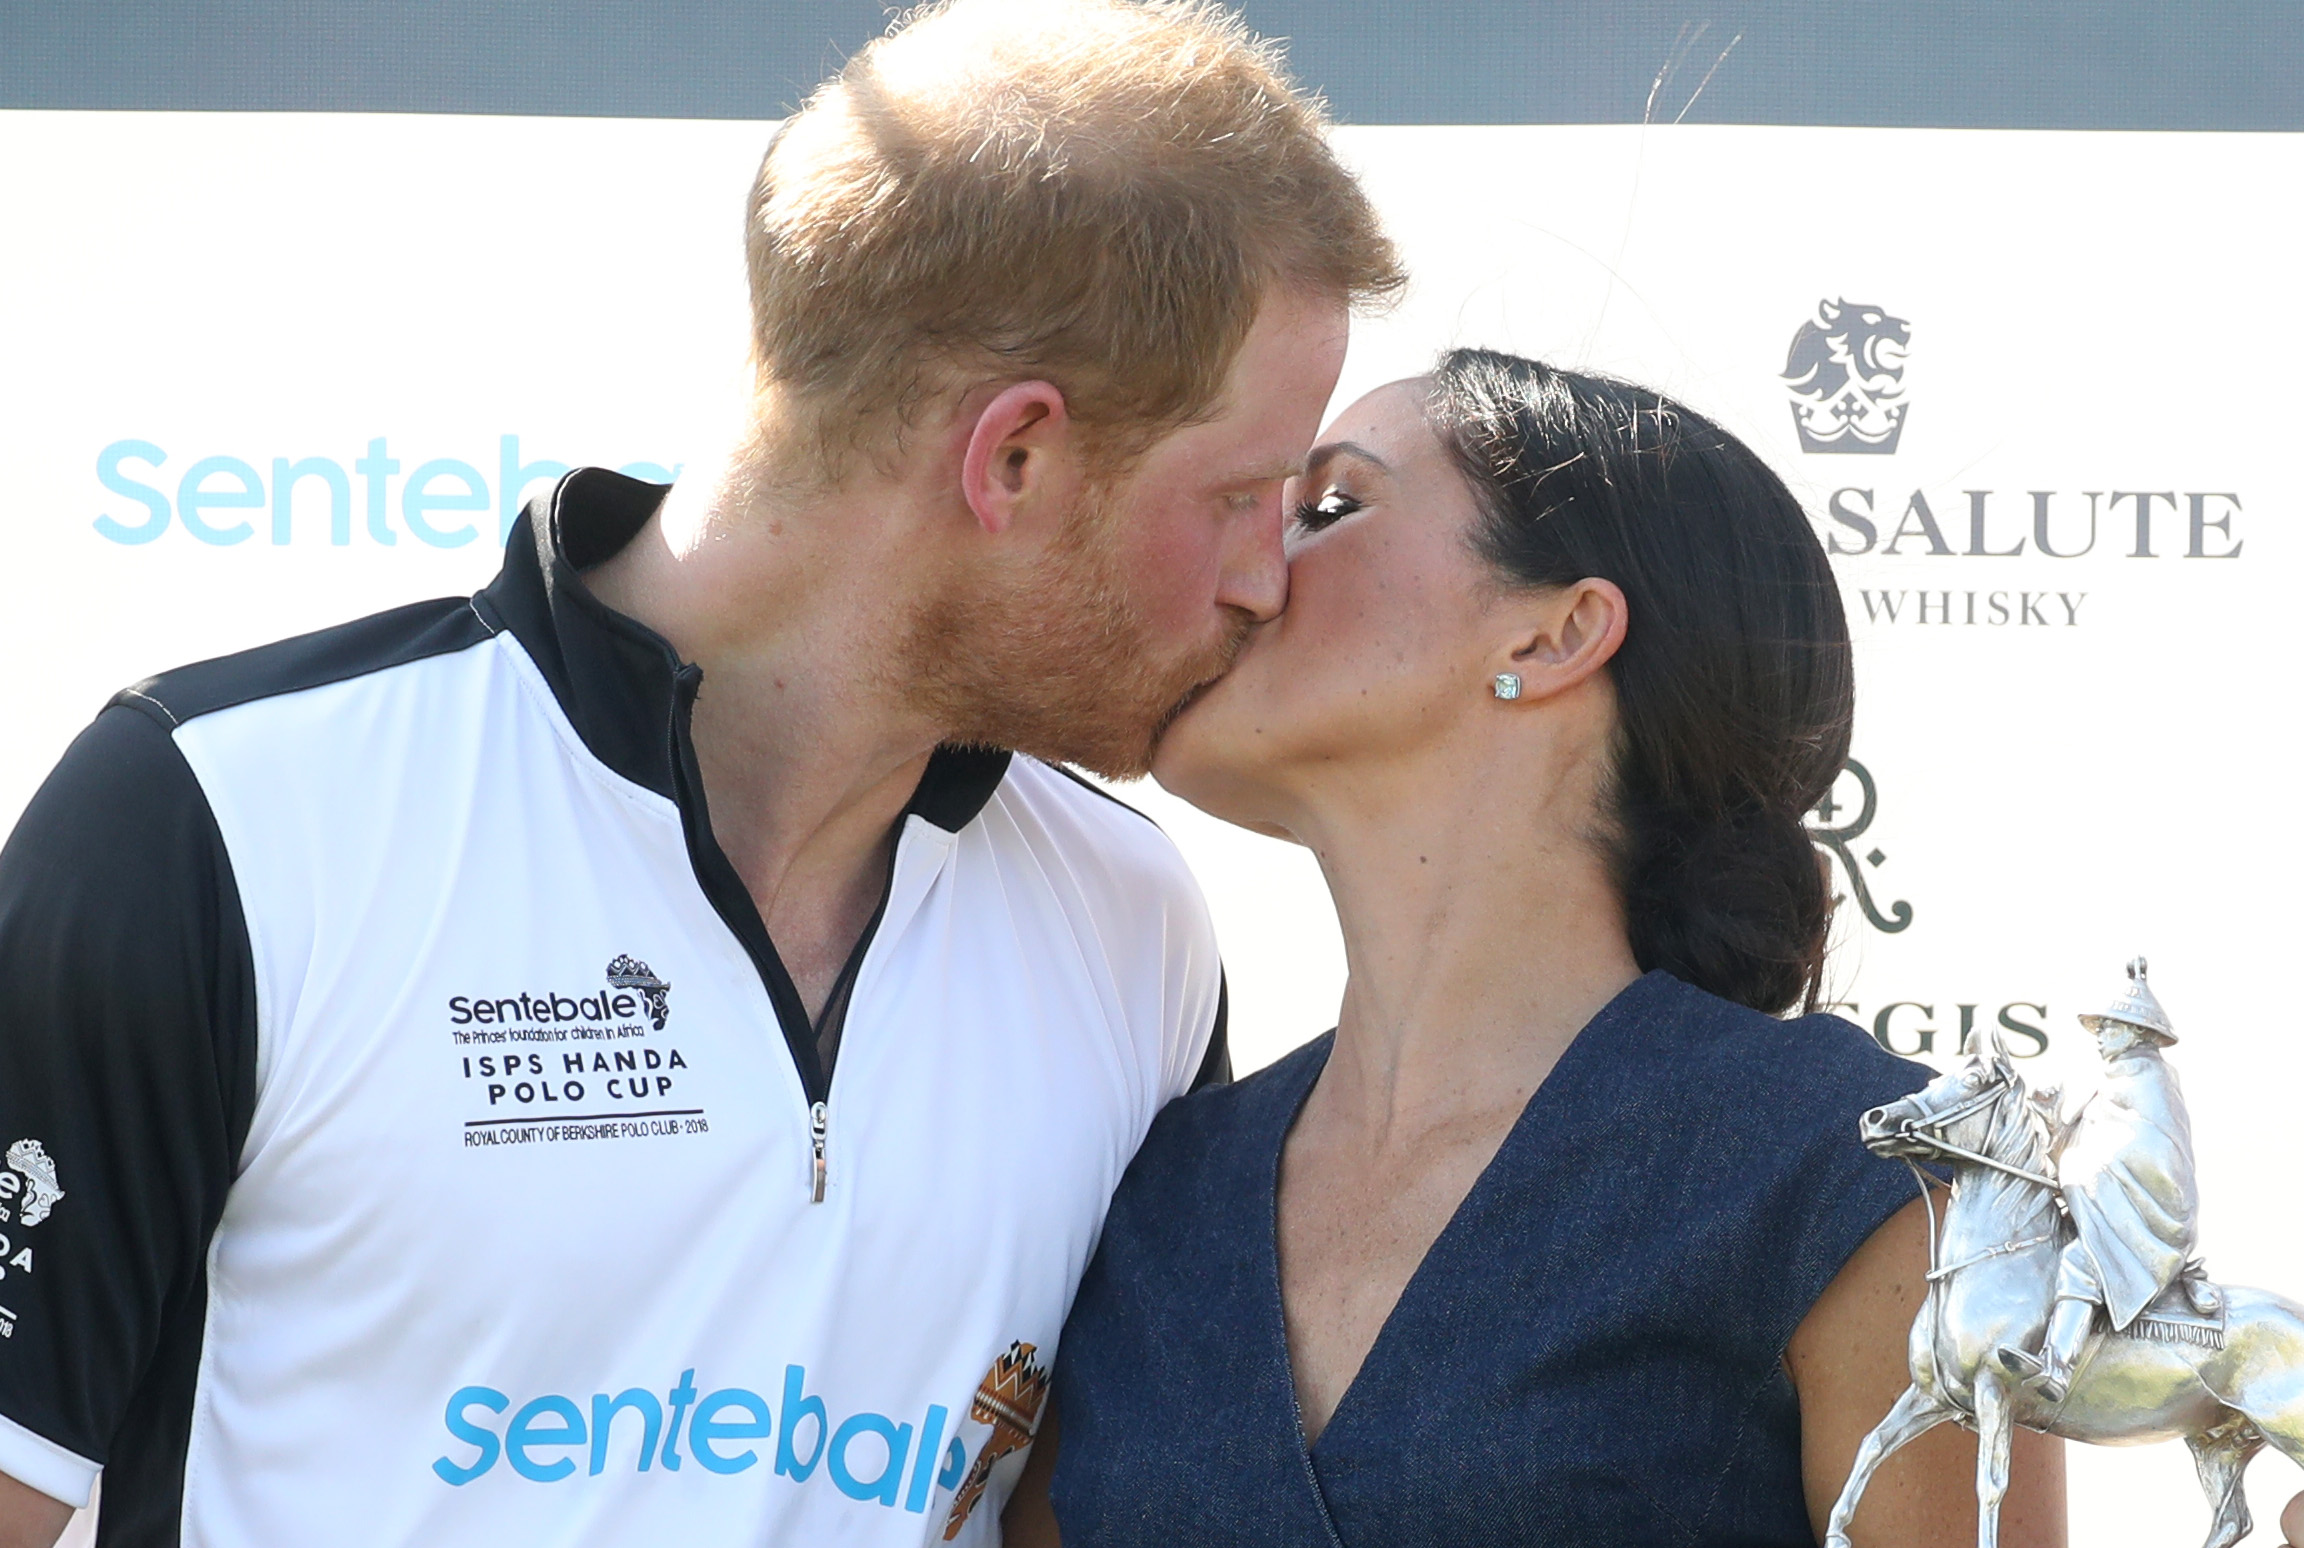 Meghan Duchess of Sussex and Prince Harry Duke of Sussex kiss after posing with the trophy after the Sentebale Polo 2018 held at the Royal County of Berkshire Polo Club on July 26, 2018, in Windsor, England. (Getty Images)